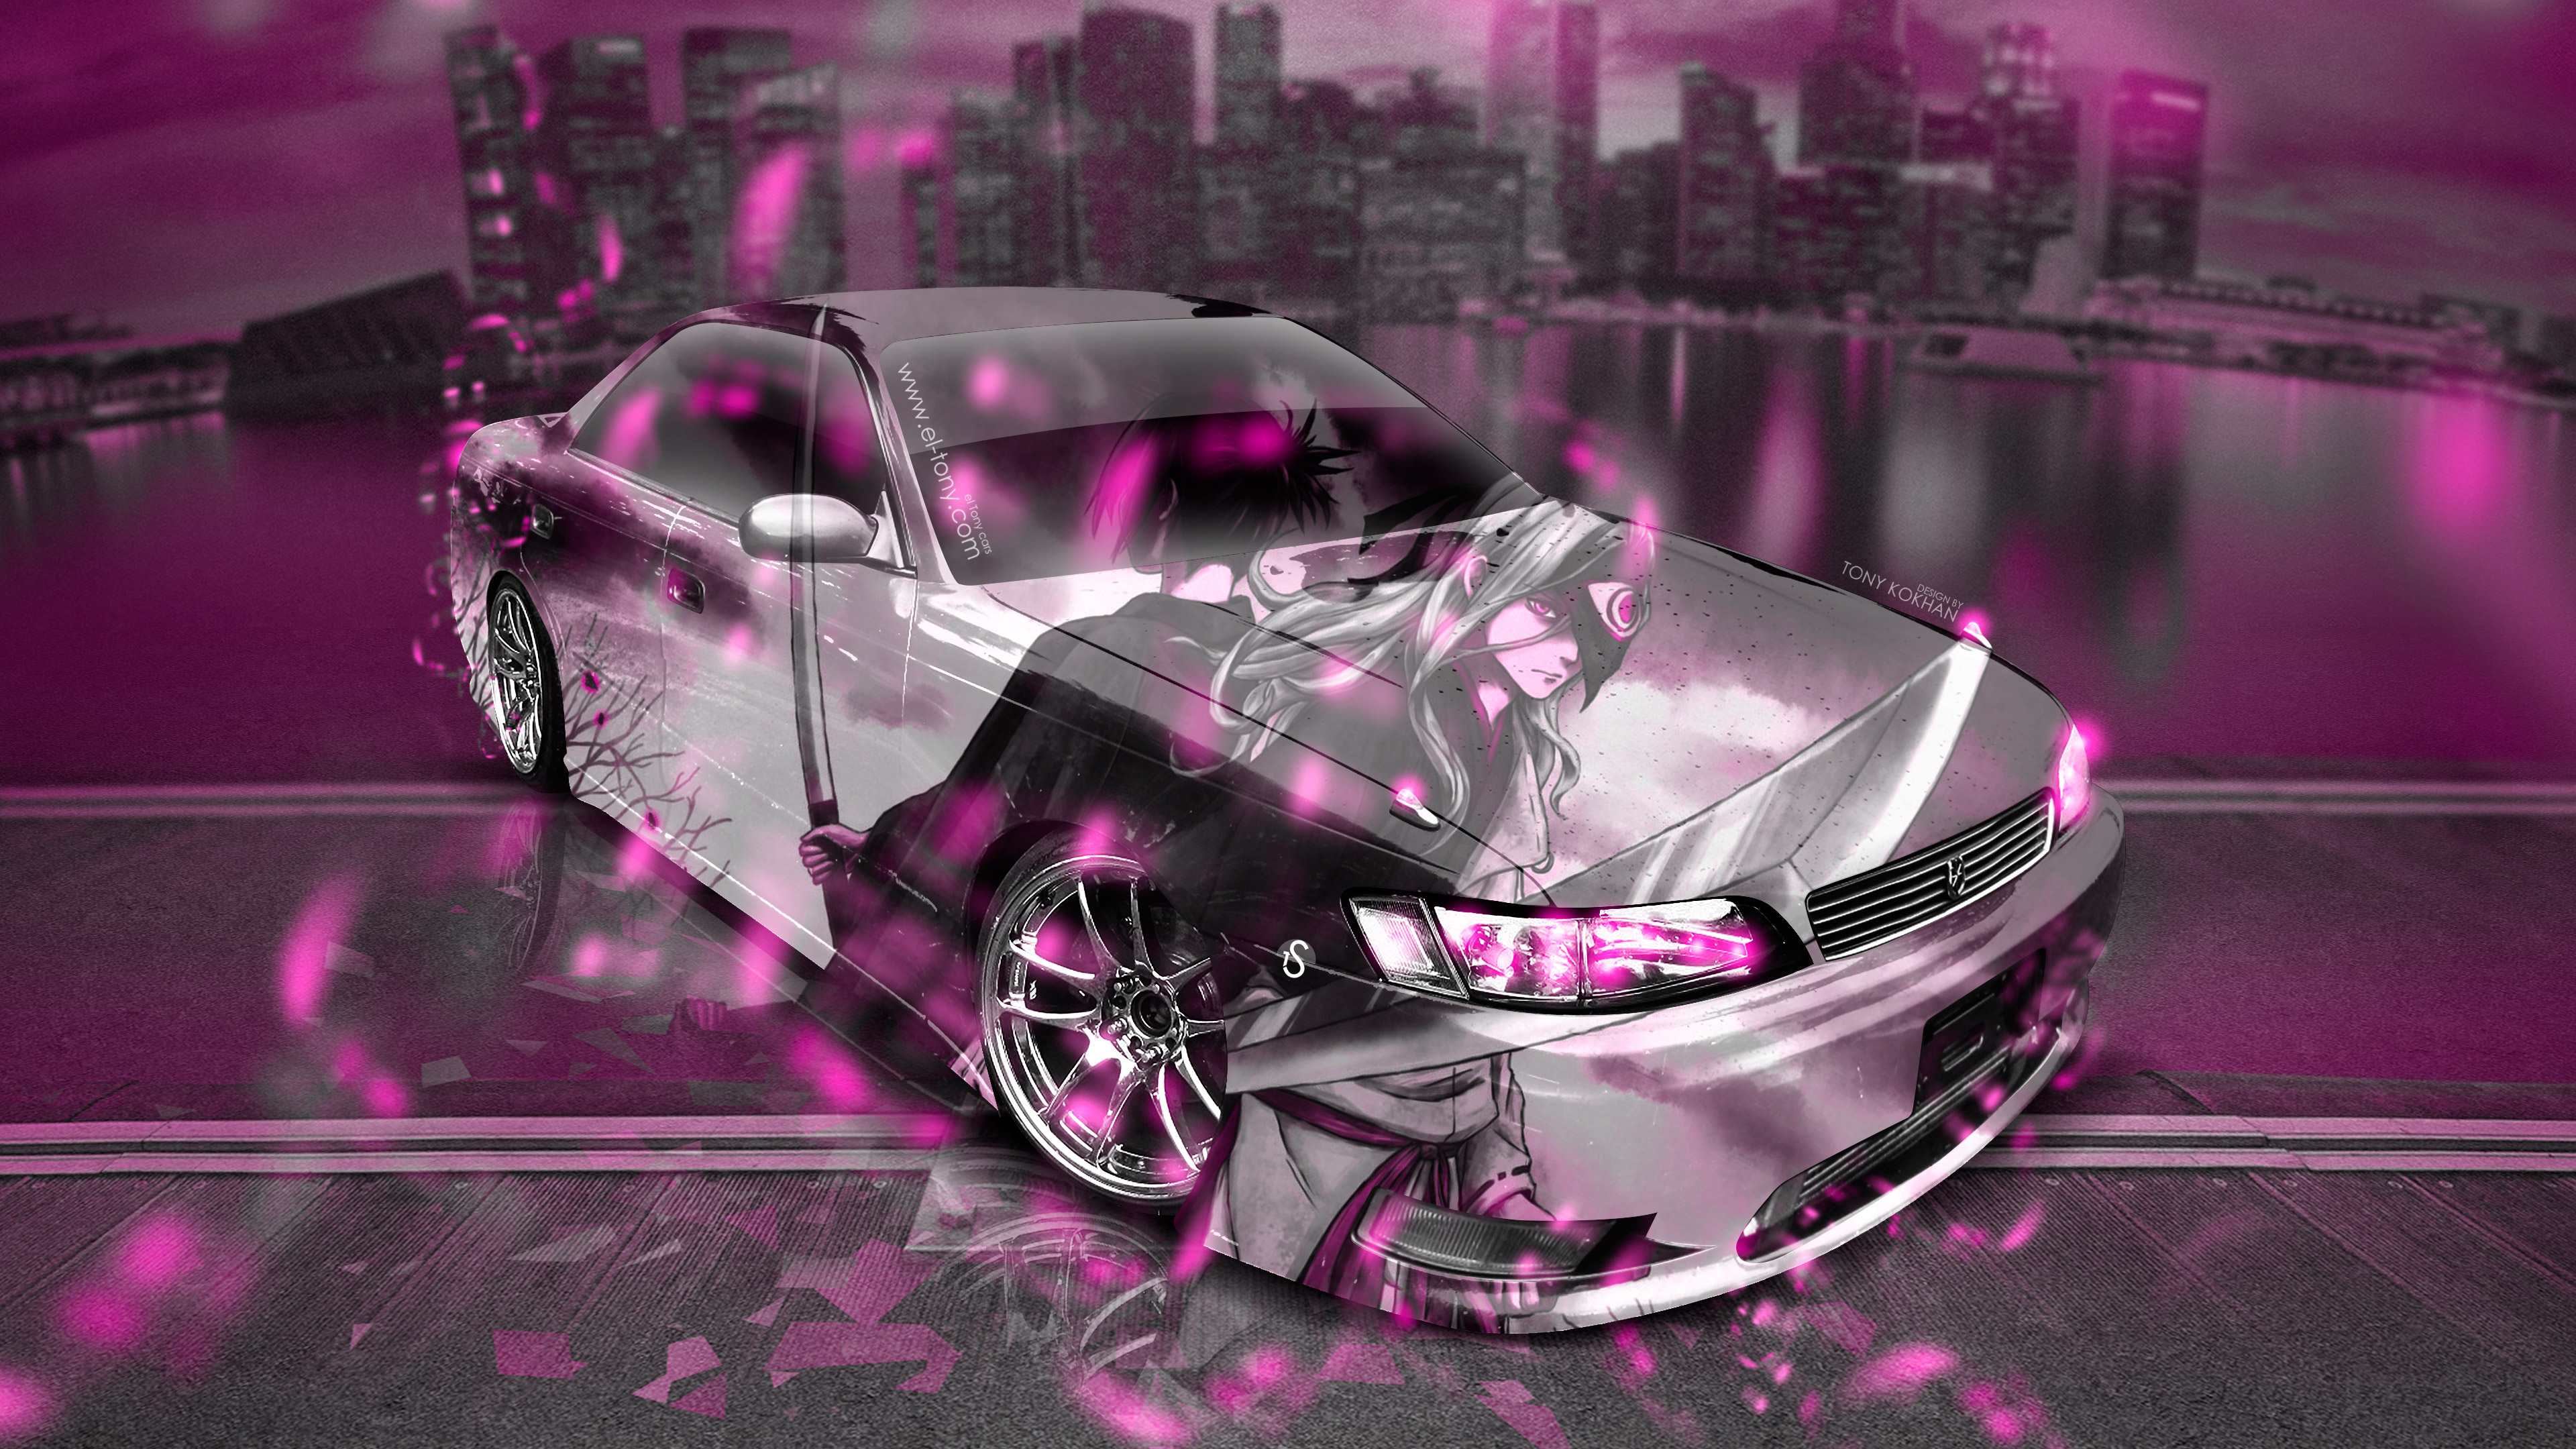 Amazing Toyota Mark2 Jzx90 Jdm Tuning Anime Samurai Night City Car 2